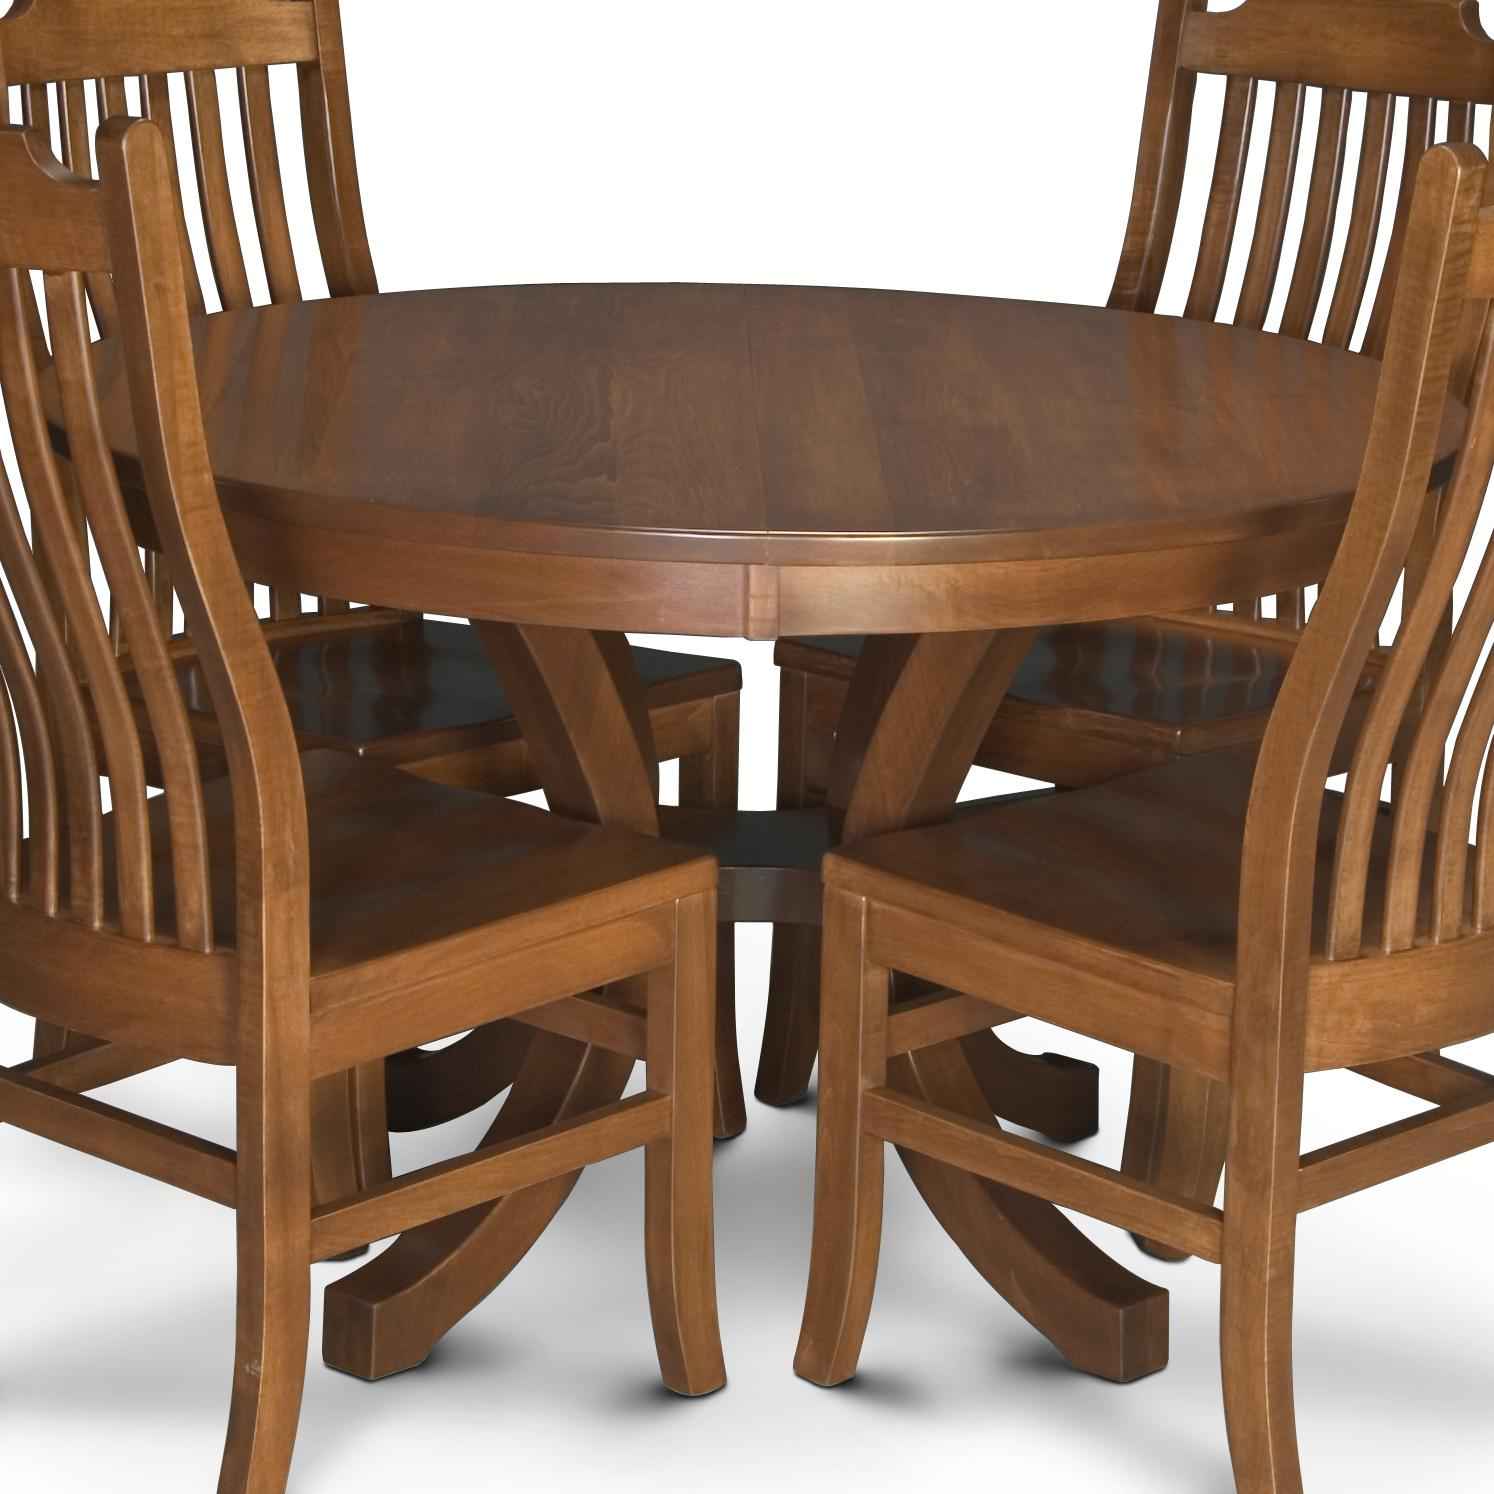 Simply Amish Loft Nbl4848 2 Round Pedestal Table With 2